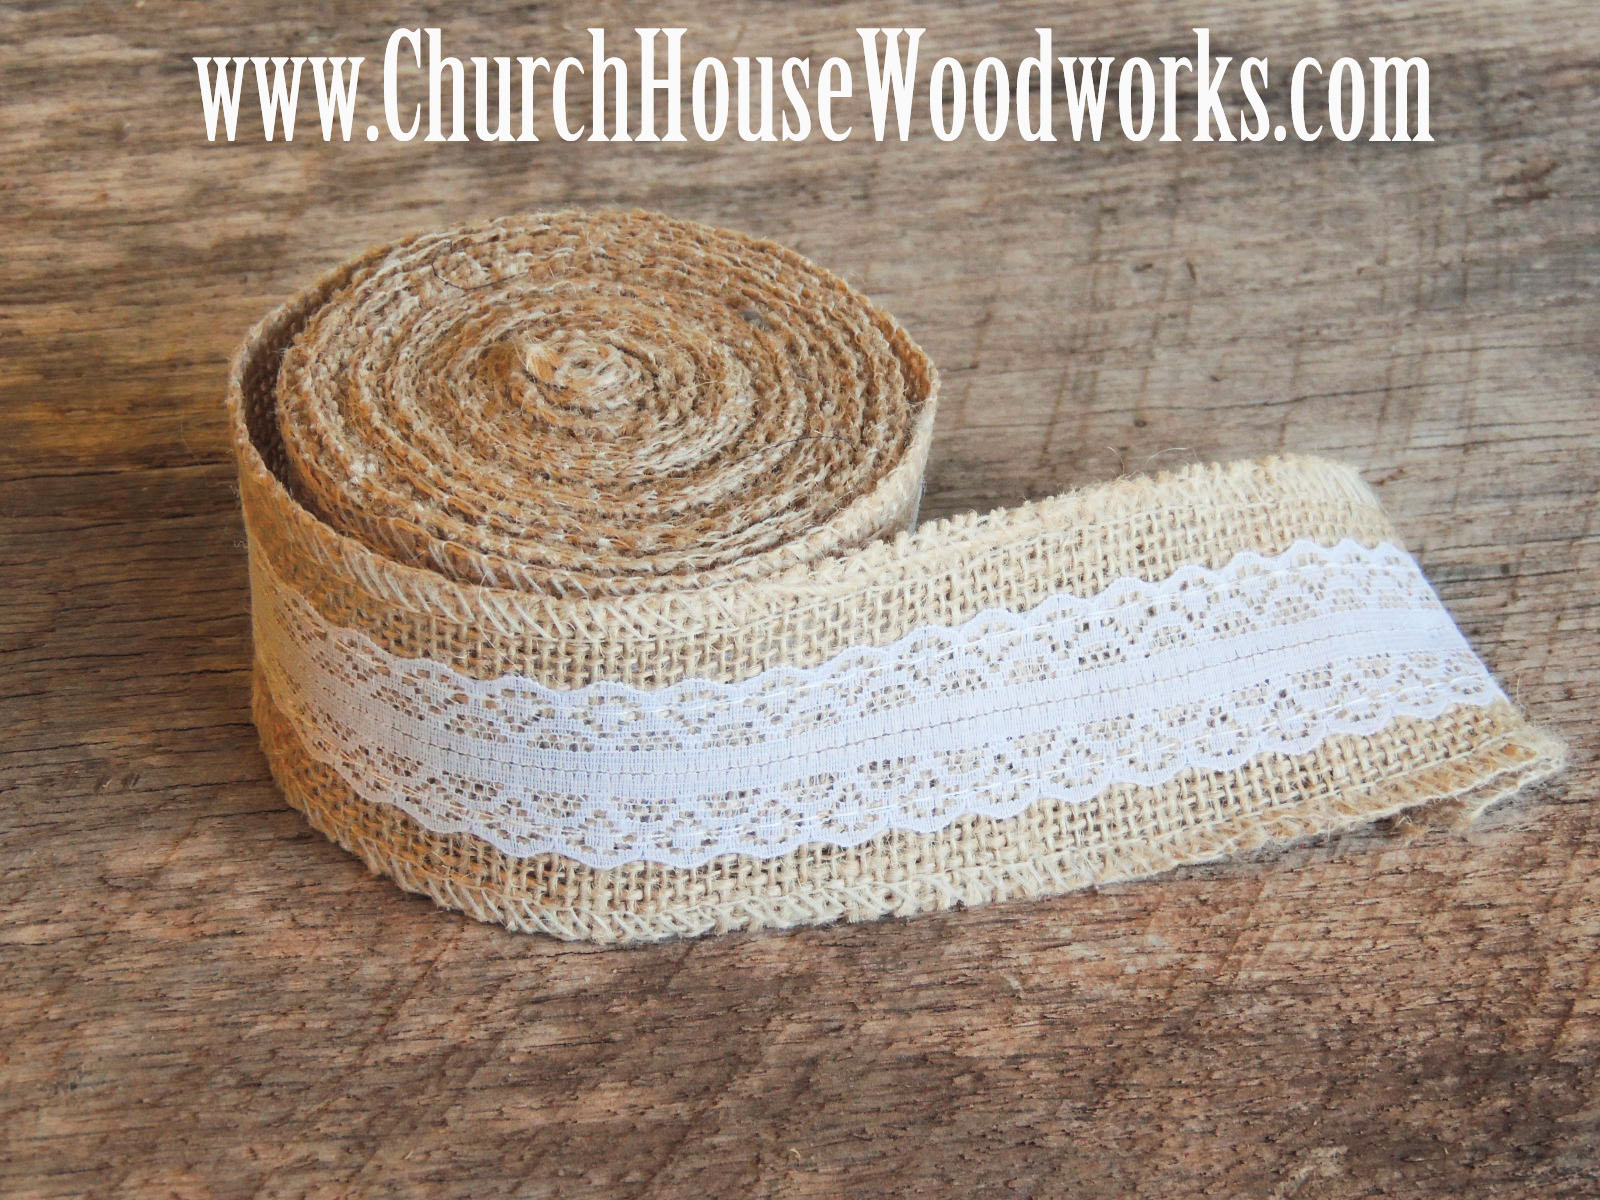 Rustic 4 weddings march 2016 jute burlap ribbon 5 yards by 2 inches wide jute burlap trim ribbon with ivory lace rustic wedding decor burlap supplies bows solutioingenieria Gallery